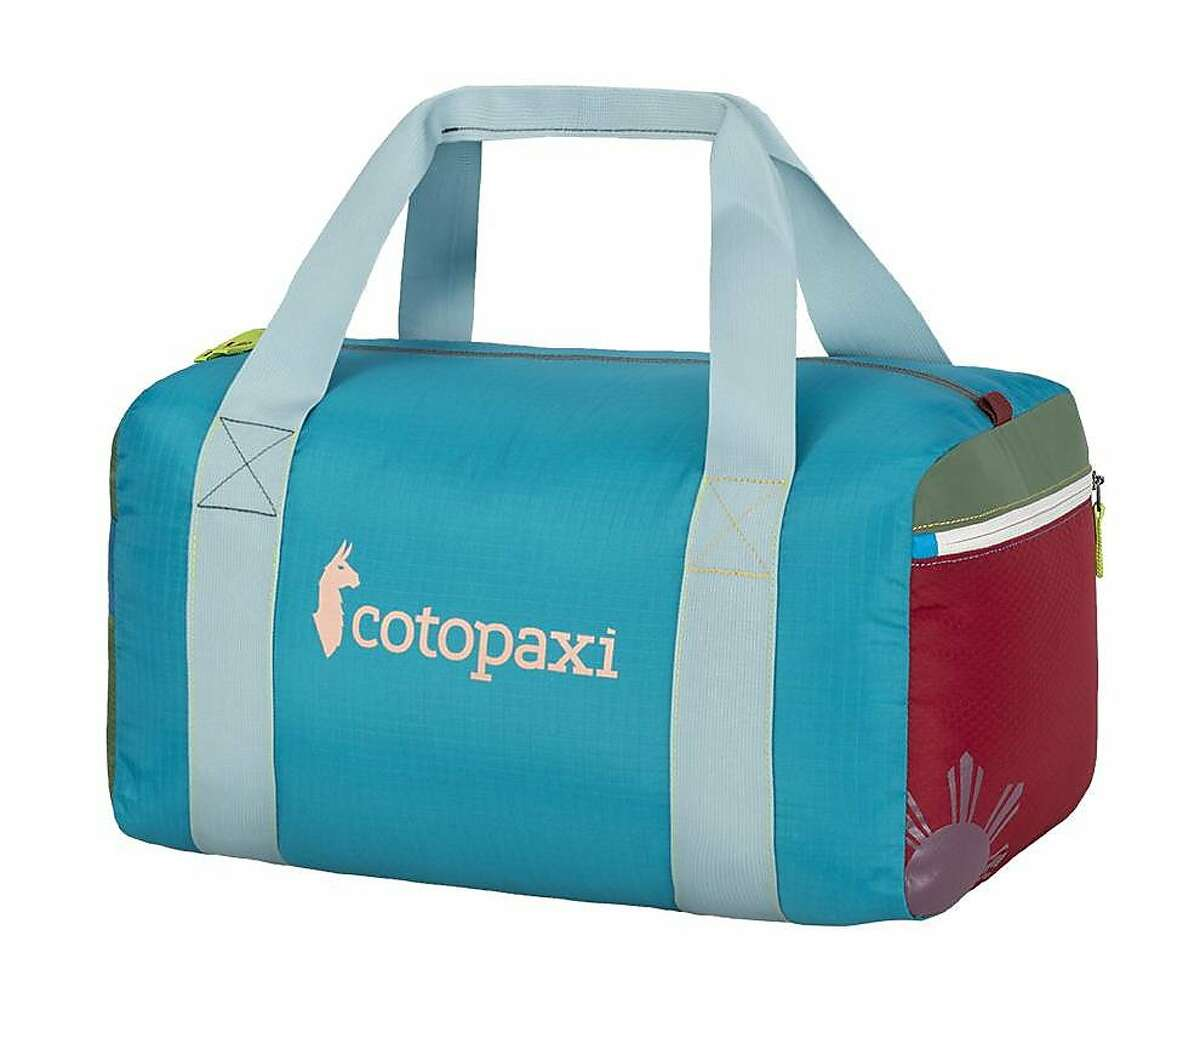 Cotopaxi Mariveles 32L Duffel Bag is among the Del Dia products, which are made from remnant nylon fabric, so everything is upcycled into the product you buy.